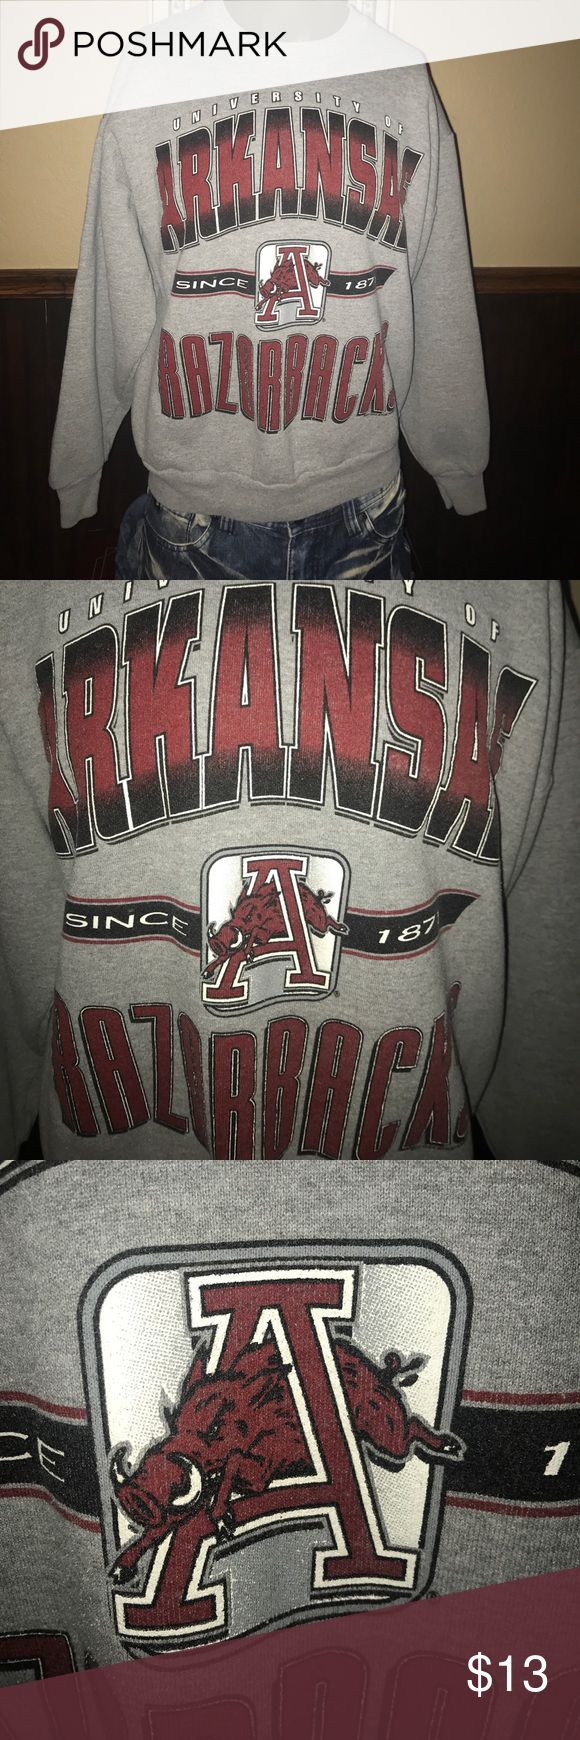 "Vintage 90s University of Arkansas Razorbacks Vintage 90s University of Arkansas Razorbacks  Sweatshirt - 24"" pit to pit  / 25"" Top of the shoulder to the bottom of the shirt  -  Sweet Graphic Vintage Shirts Sweatshirts & Hoodies"